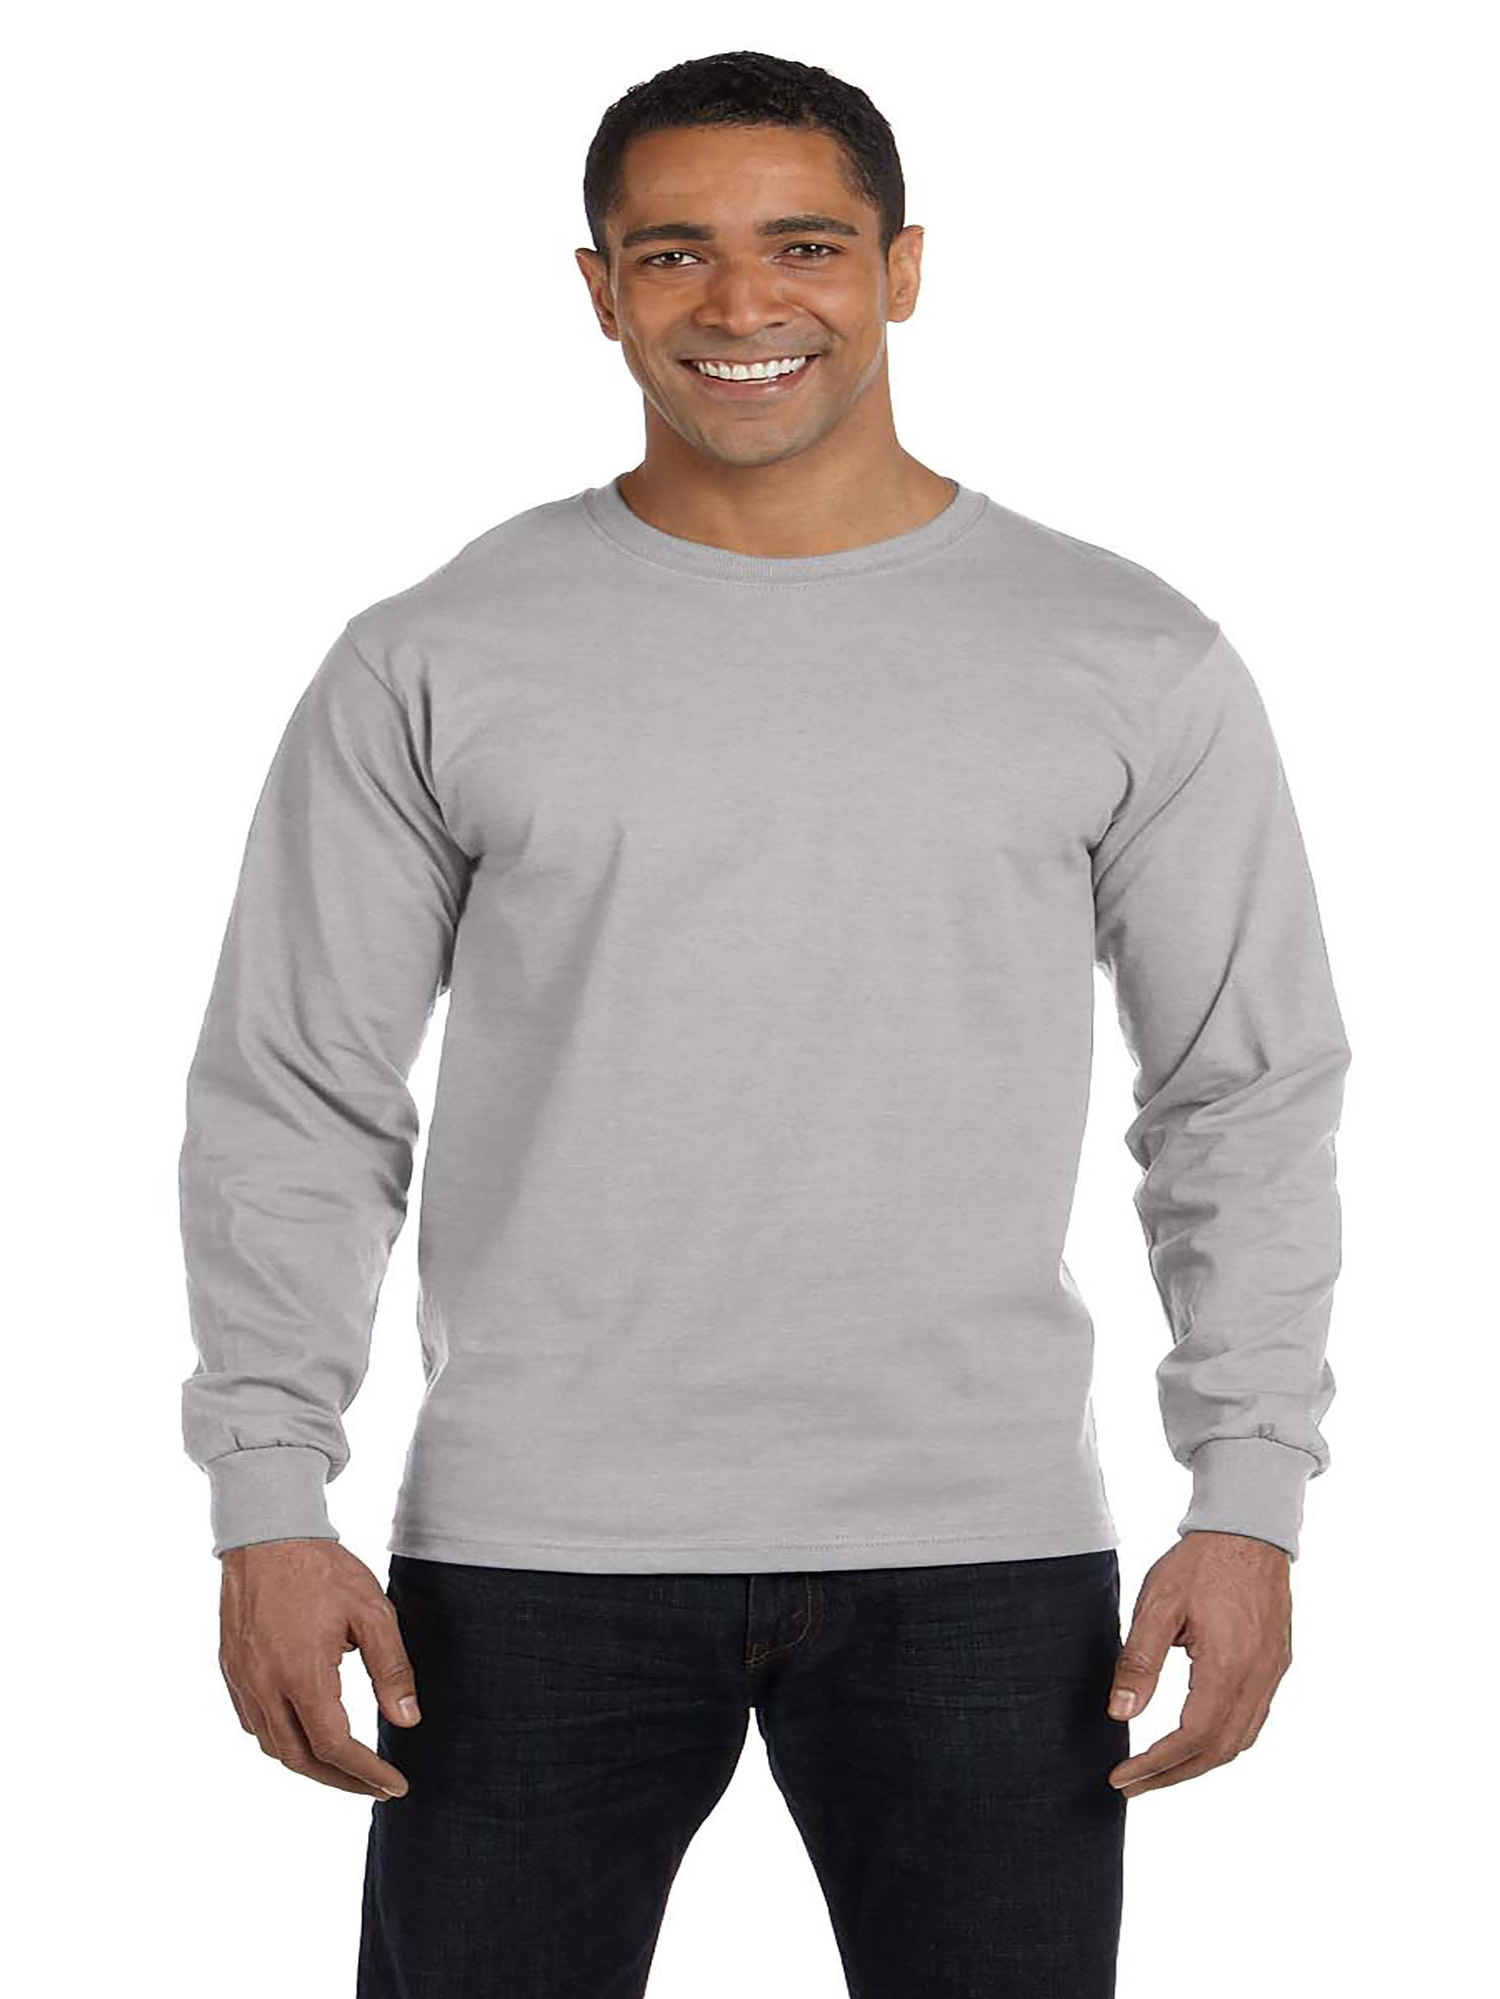 Hanes Mens Long Sleeve Comfort Soft T-Shirt